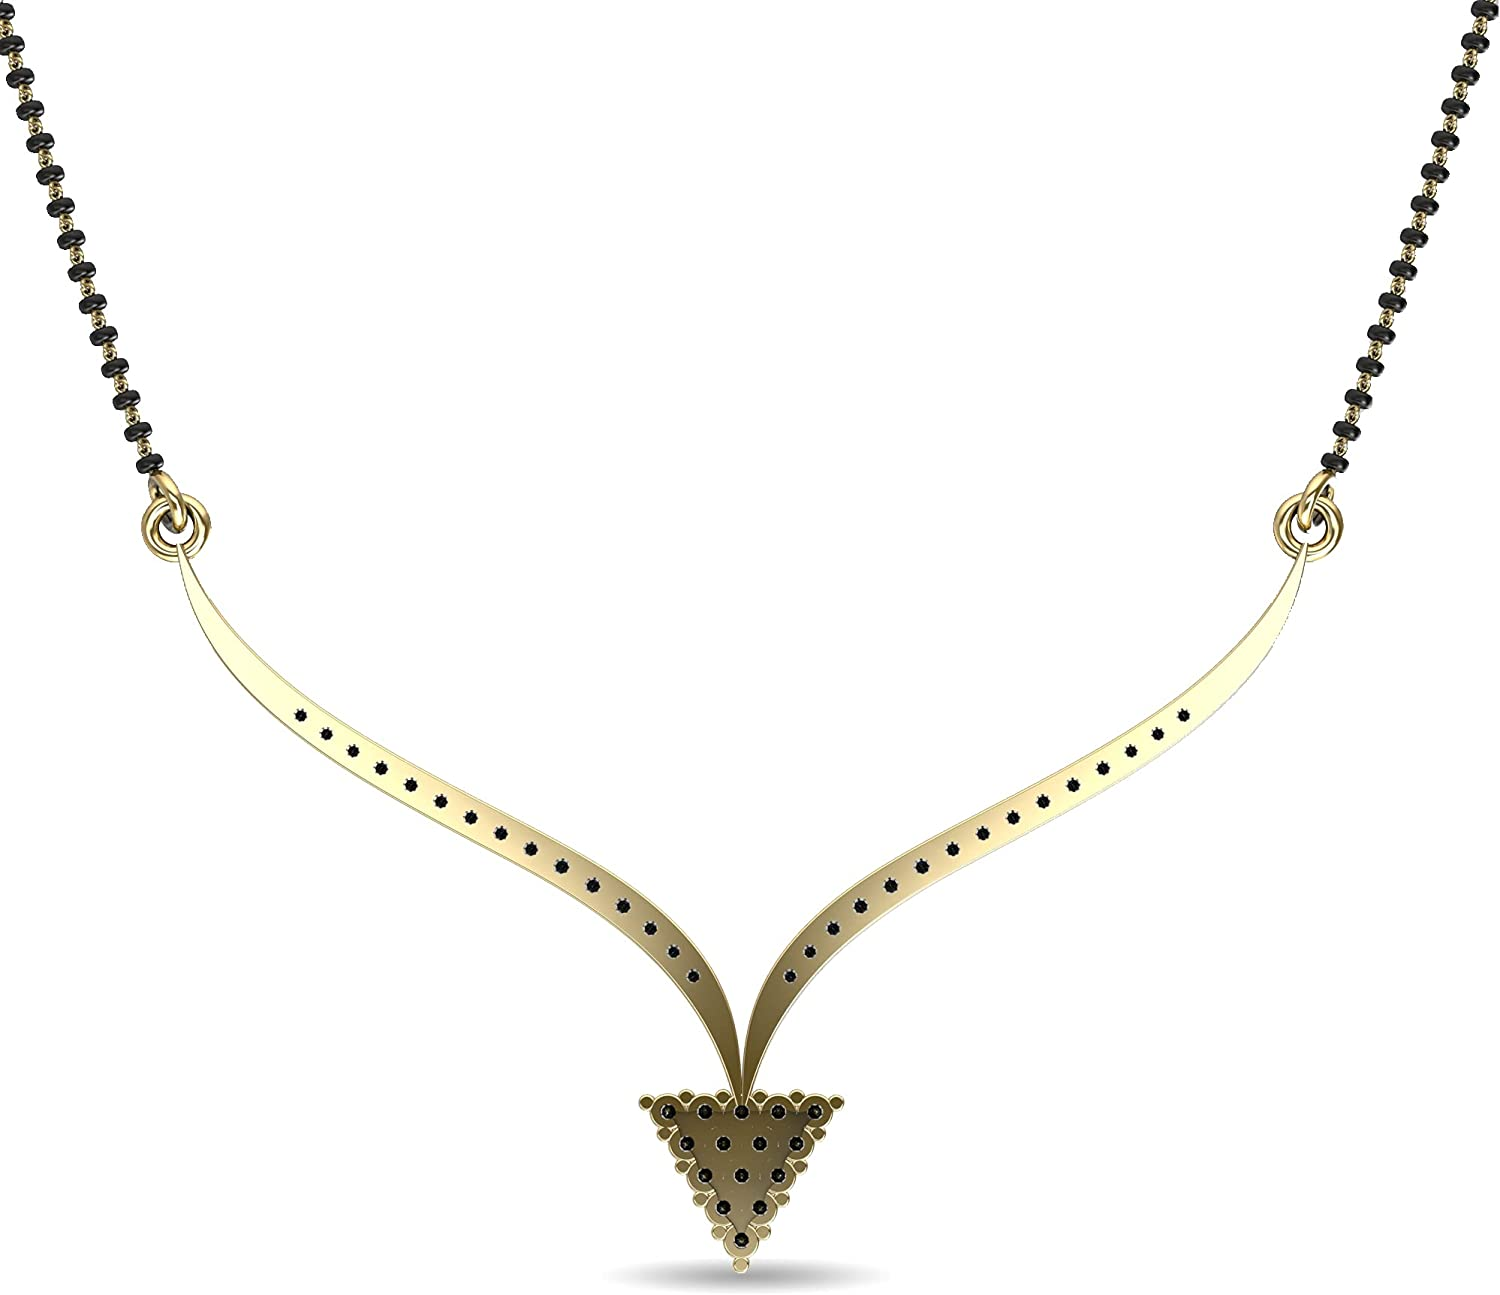 14K Fine Gold Indian Bollywood Traditional 0.45 ct Natural Diamond Mangalsutra (H-I Color, I Clarity) Pendant Necklace for Women with Studded Long Black Beaded Gold Ethnic Chain Wedding Bridal Symbolic Designer Set Classy Simply Look Jewelry